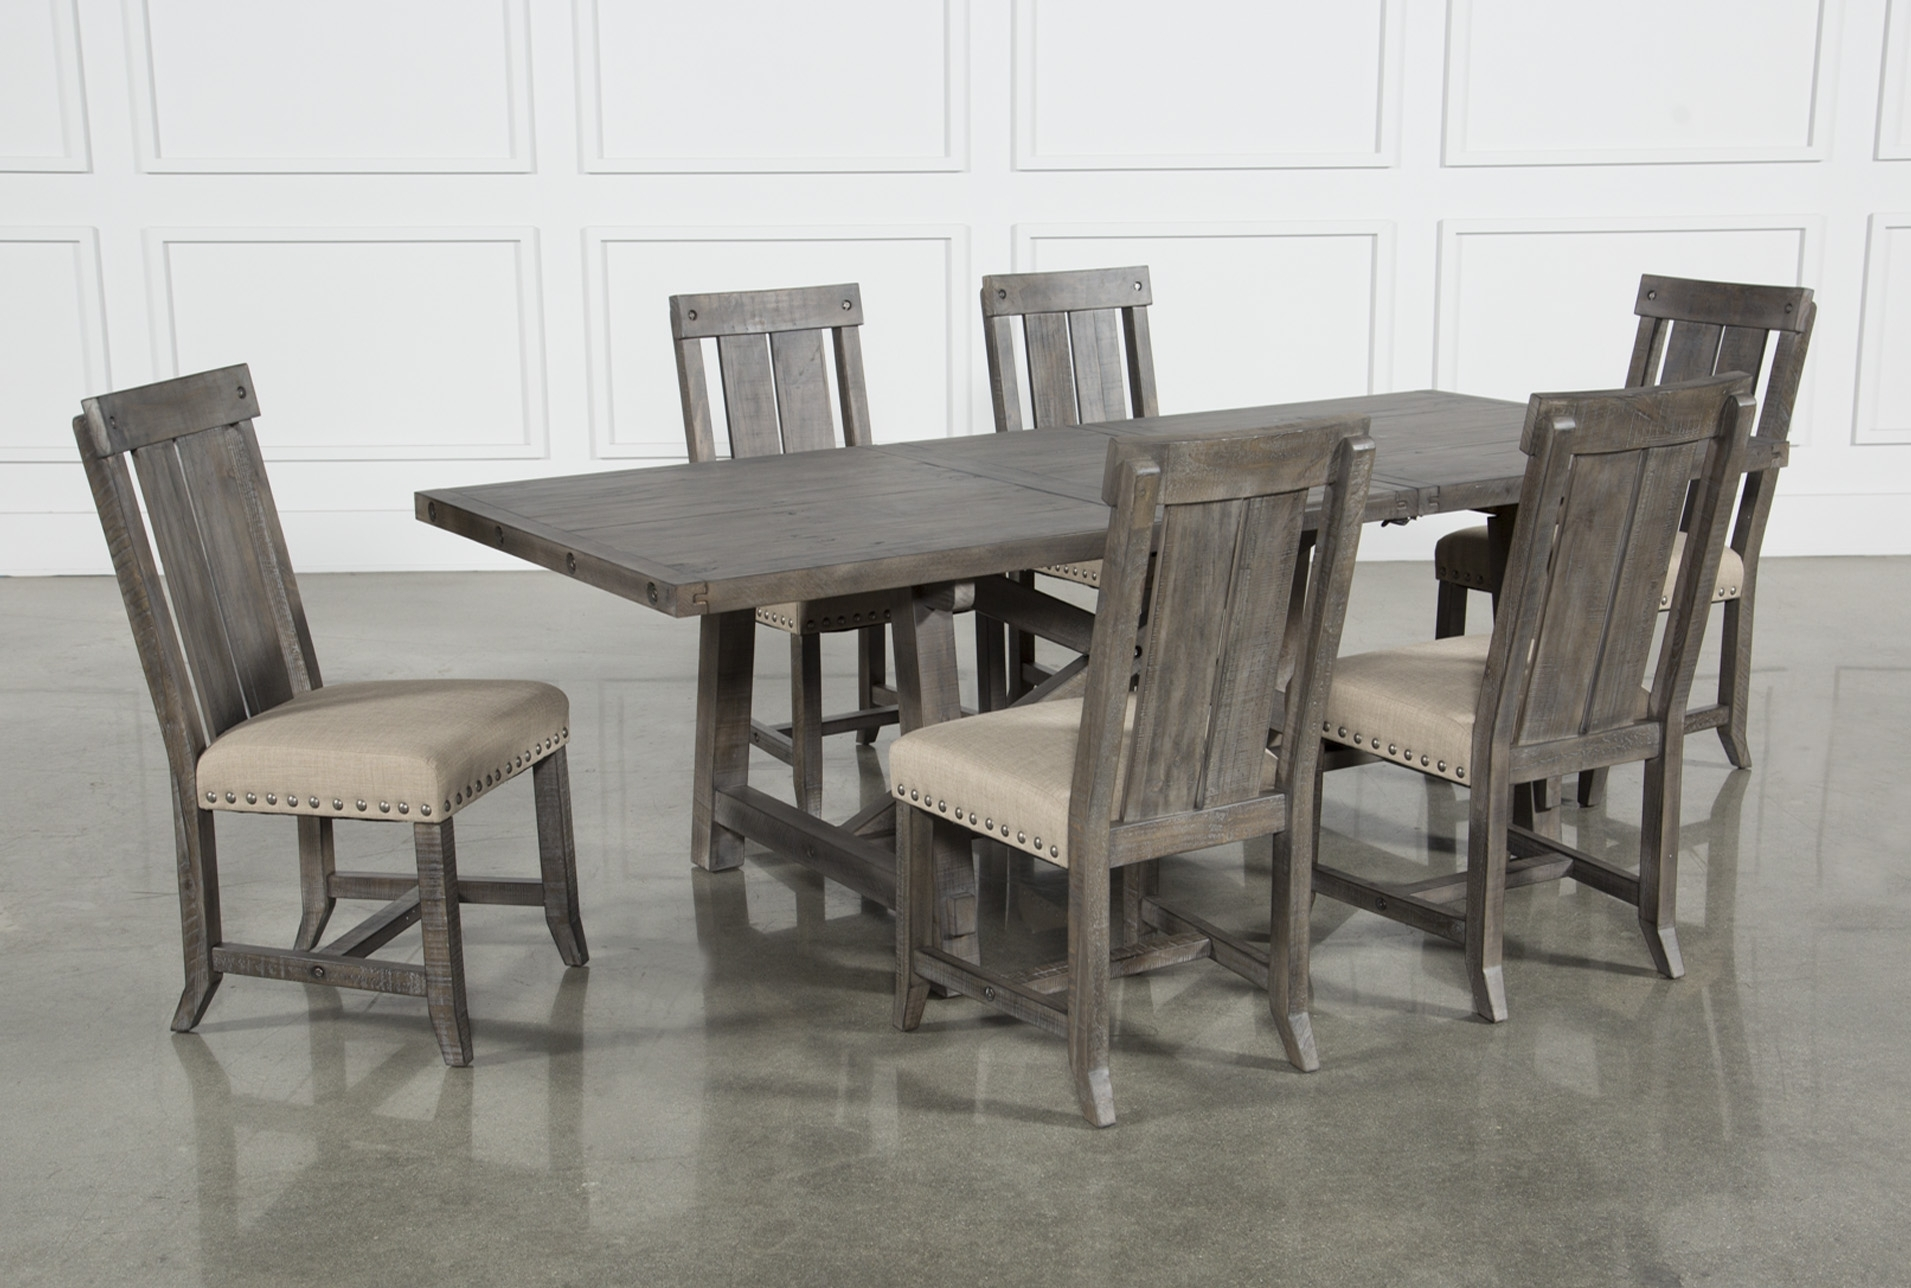 Jaxon Grey 7 Piece Rectangle Extension Dining Set W/wood Chairs Throughout Most Popular Jaxon Grey 7 Piece Rectangle Extension Dining Sets With Uph Chairs (Photo 2 of 20)